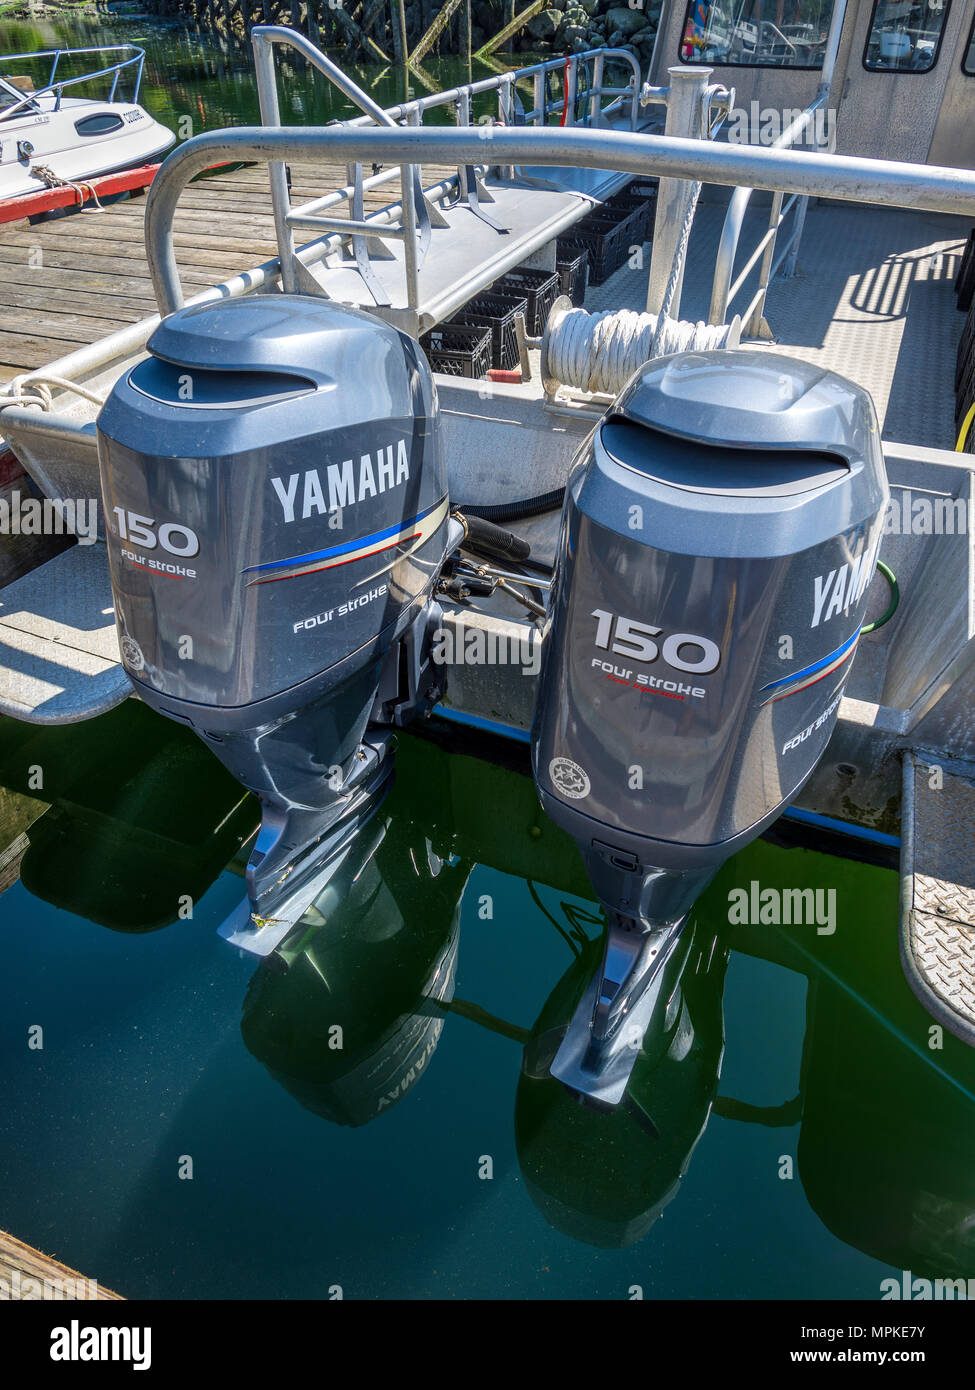 Used Yamaha Outboard Motors For Sale Bc